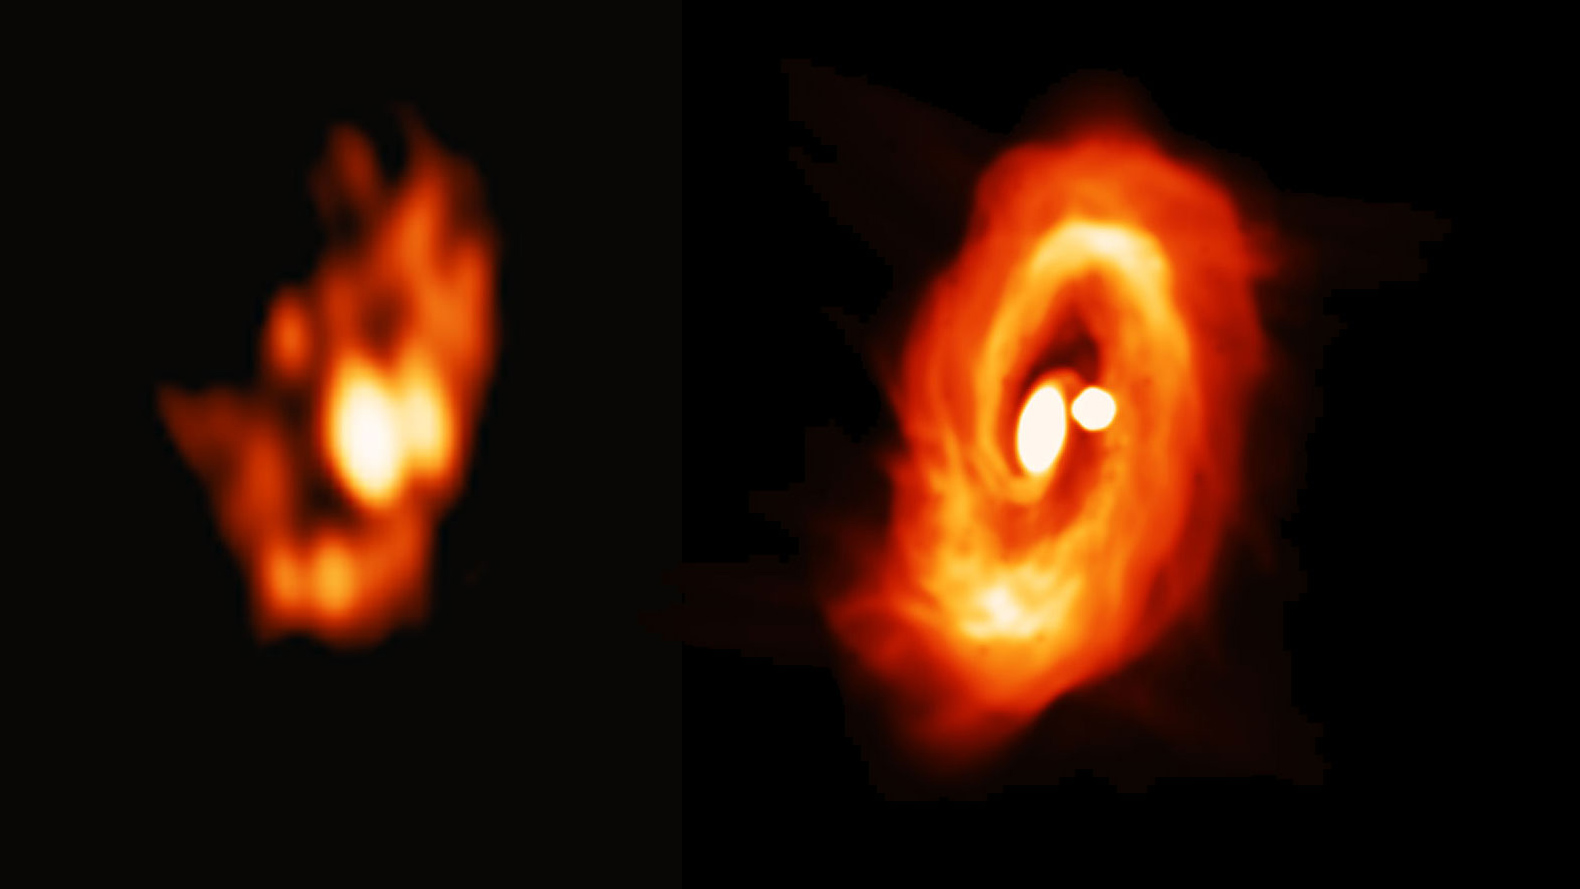 the stellar lives of stars Stars are spheres of glowing hydrogen and other chemical elements which  of  the births, lives and deaths of individual stars with theories of stellar evolution.